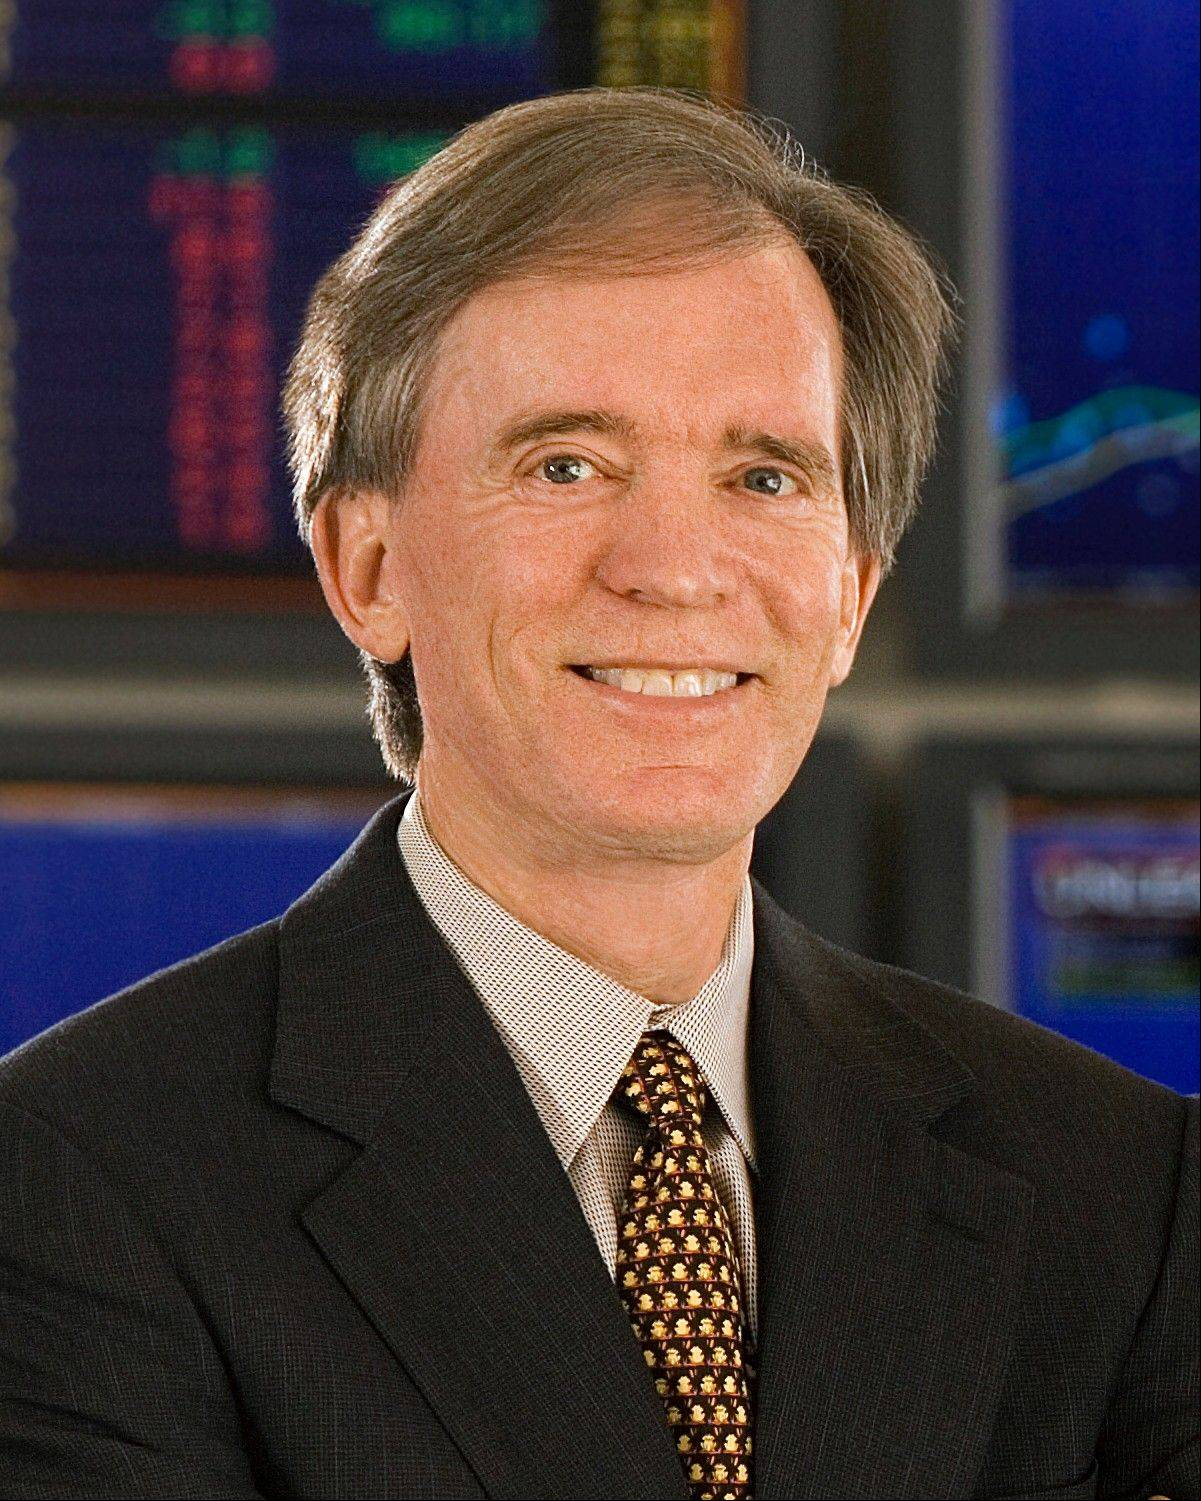 Bill Gross is a three-time winner of Morningstar's bond fund manager of the year title, in addition to honors covering the last decade. The strong record he's compiled at PIMCO T